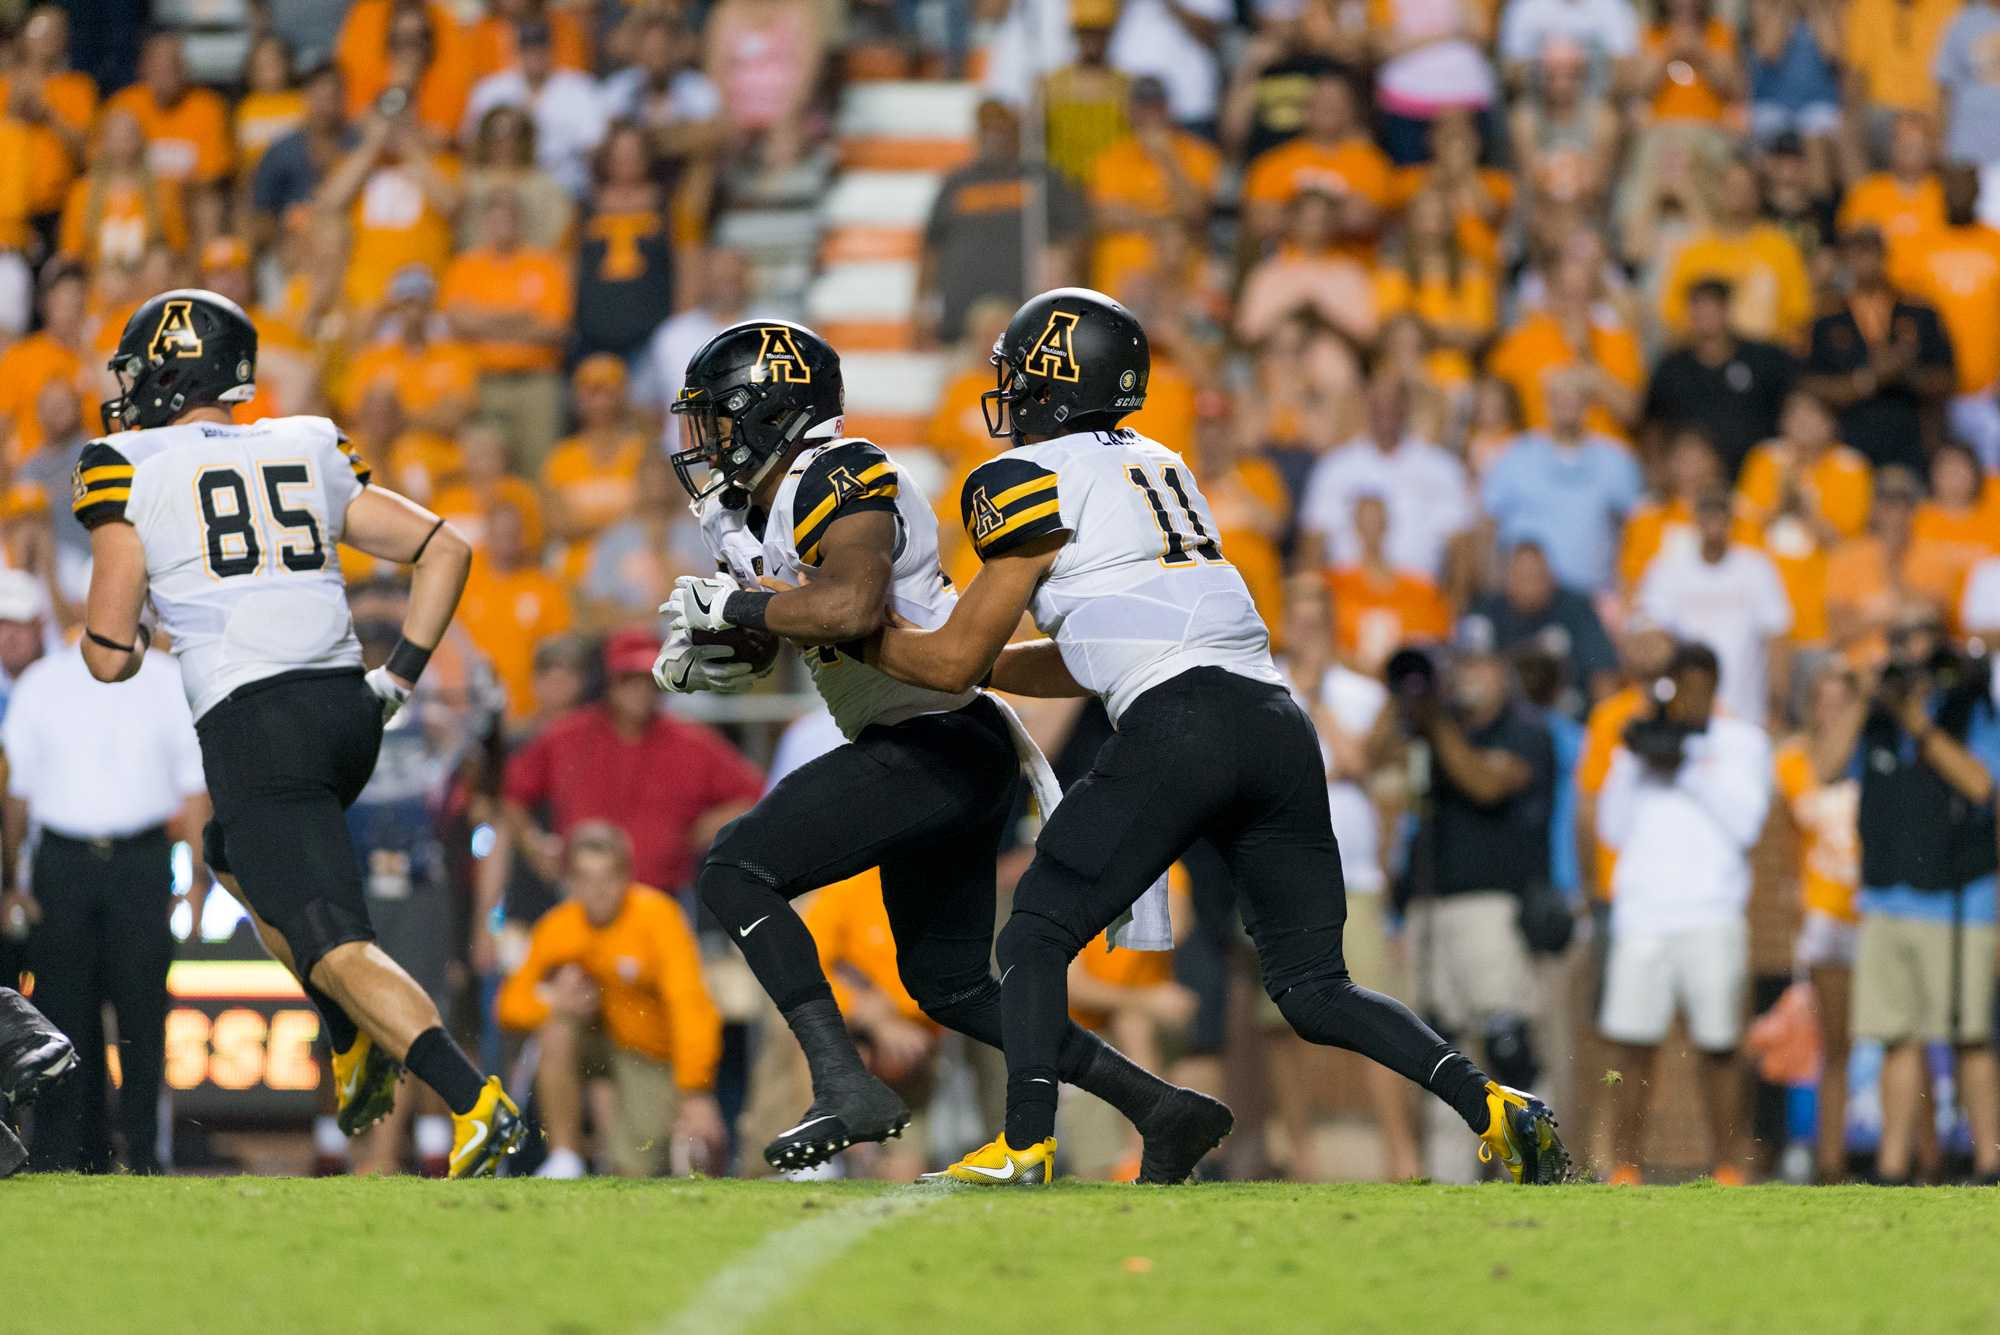 Rapid Reaction: App State vs. Tennessee